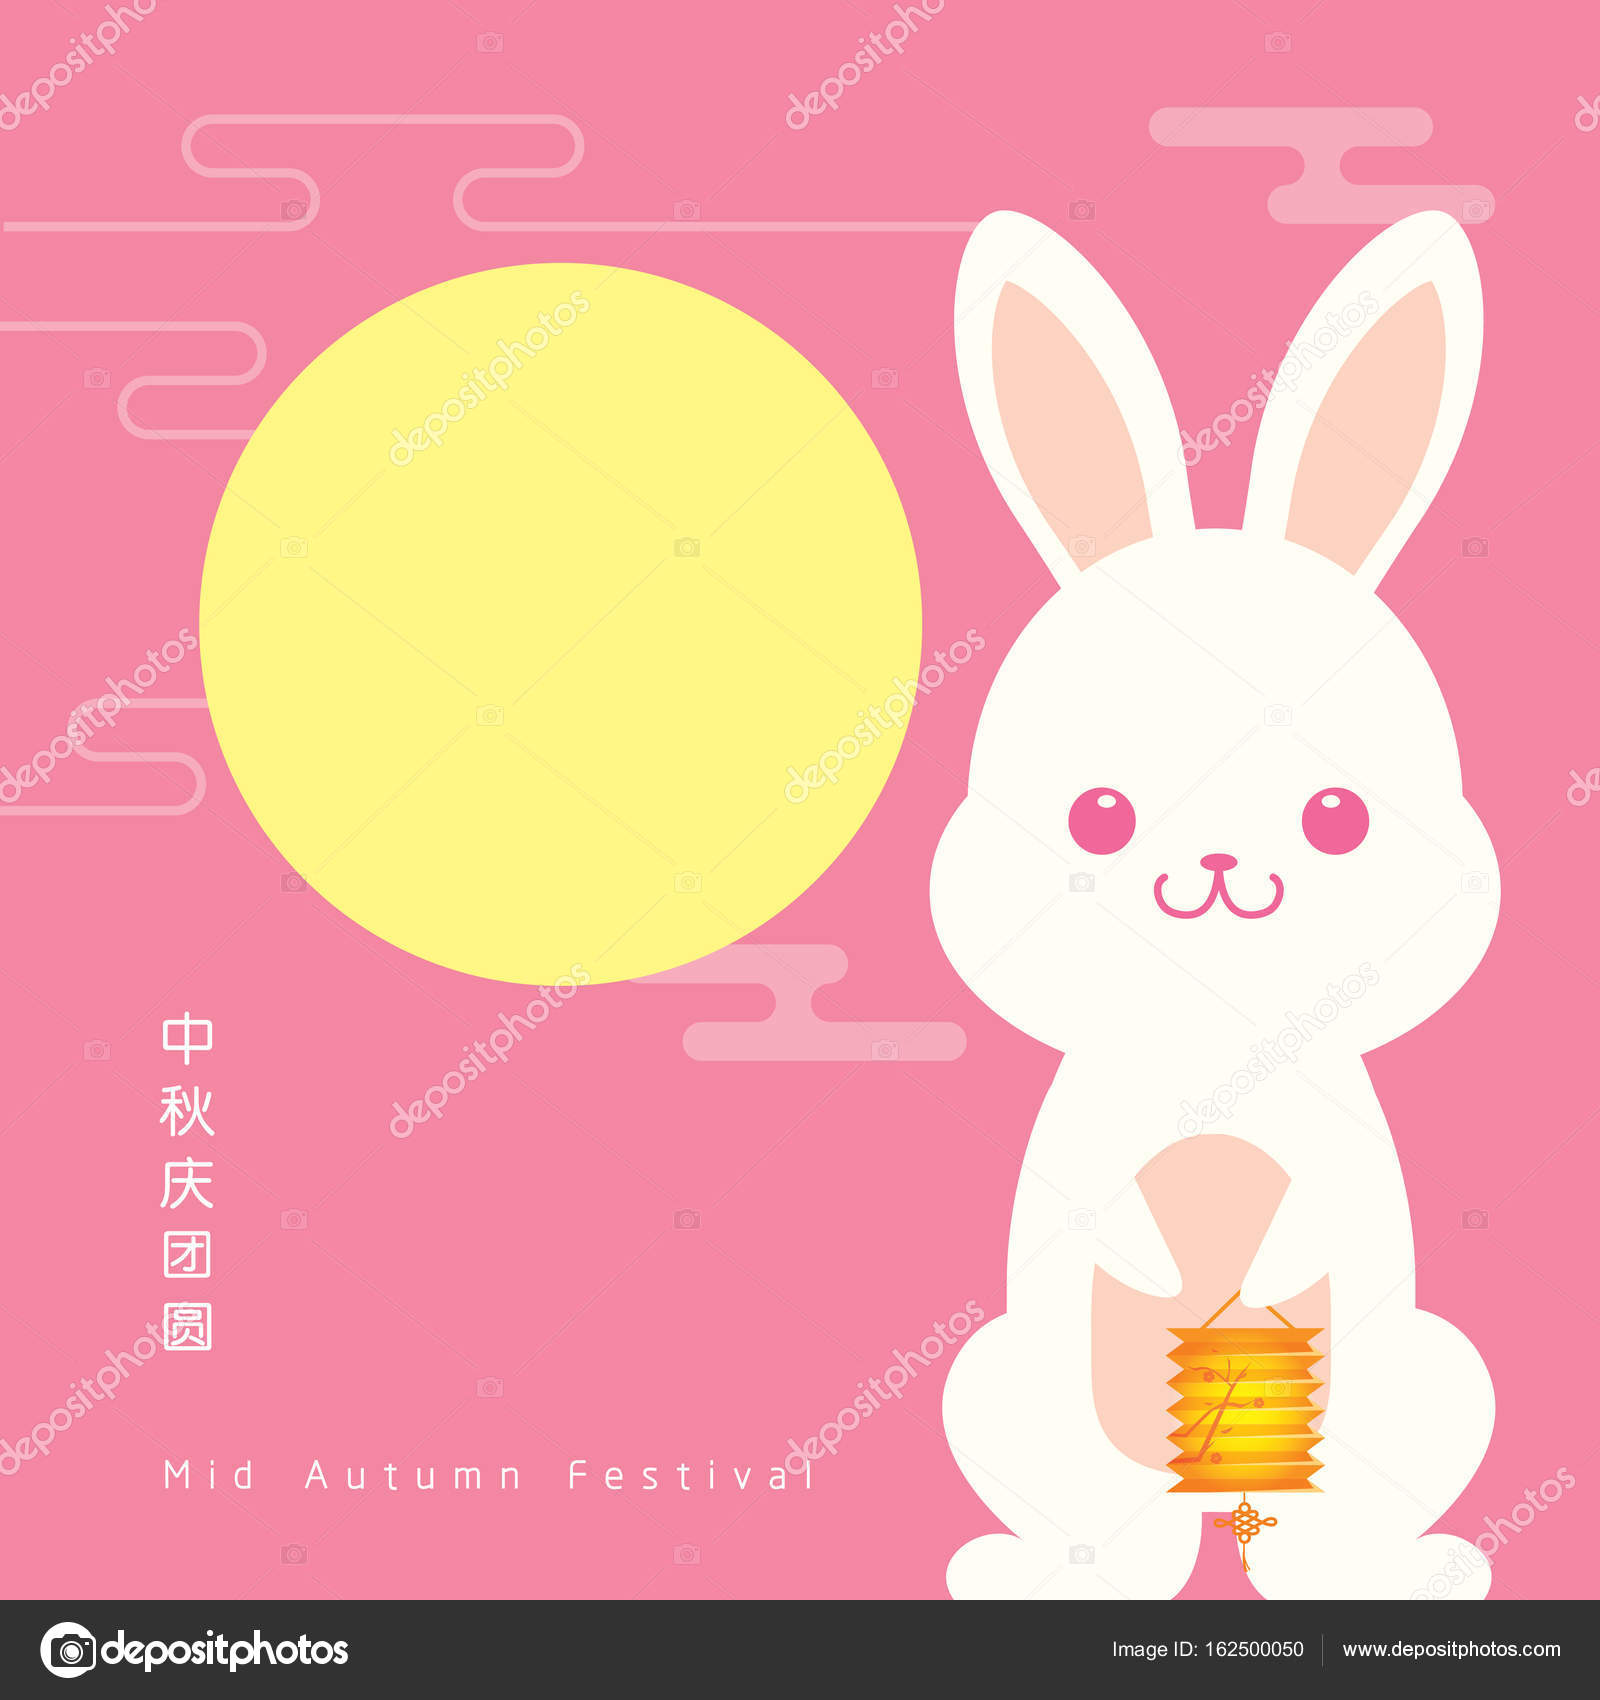 Mid autumn festival illustration with cute bunny holding the lantern mid autumn festival illustration with cute bunny holding the lantern caption celebrate mid kristyandbryce Choice Image